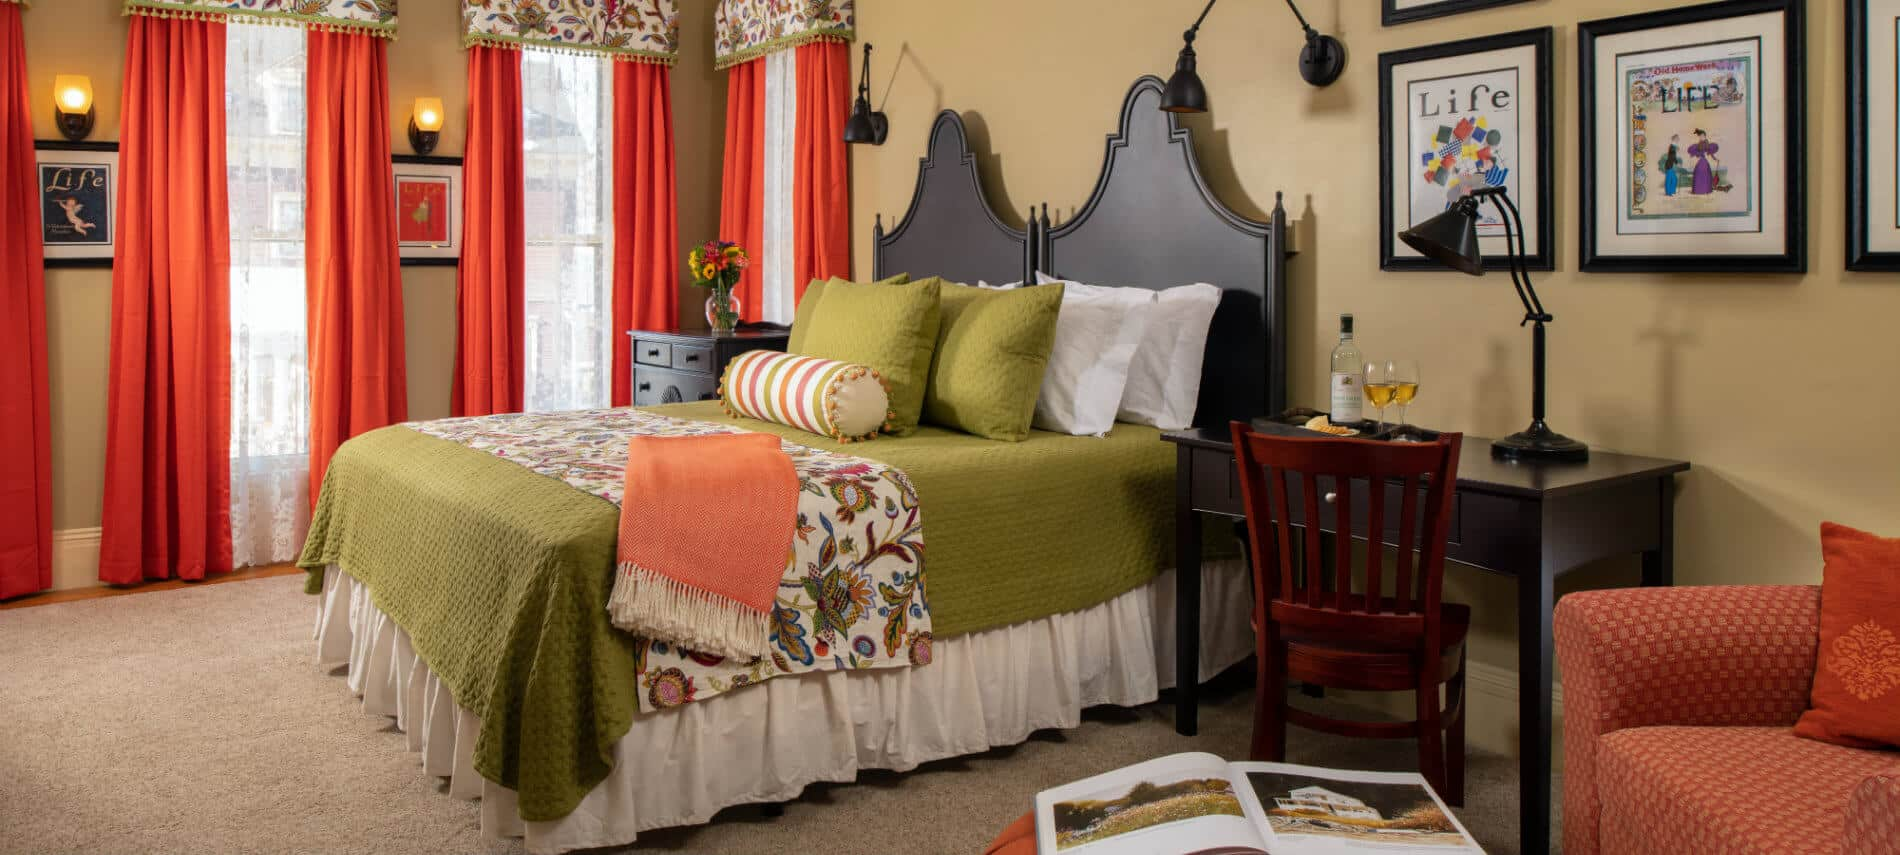 Cheery guestroom in green with orange accents with a wooden king bed, a desk and a chair .